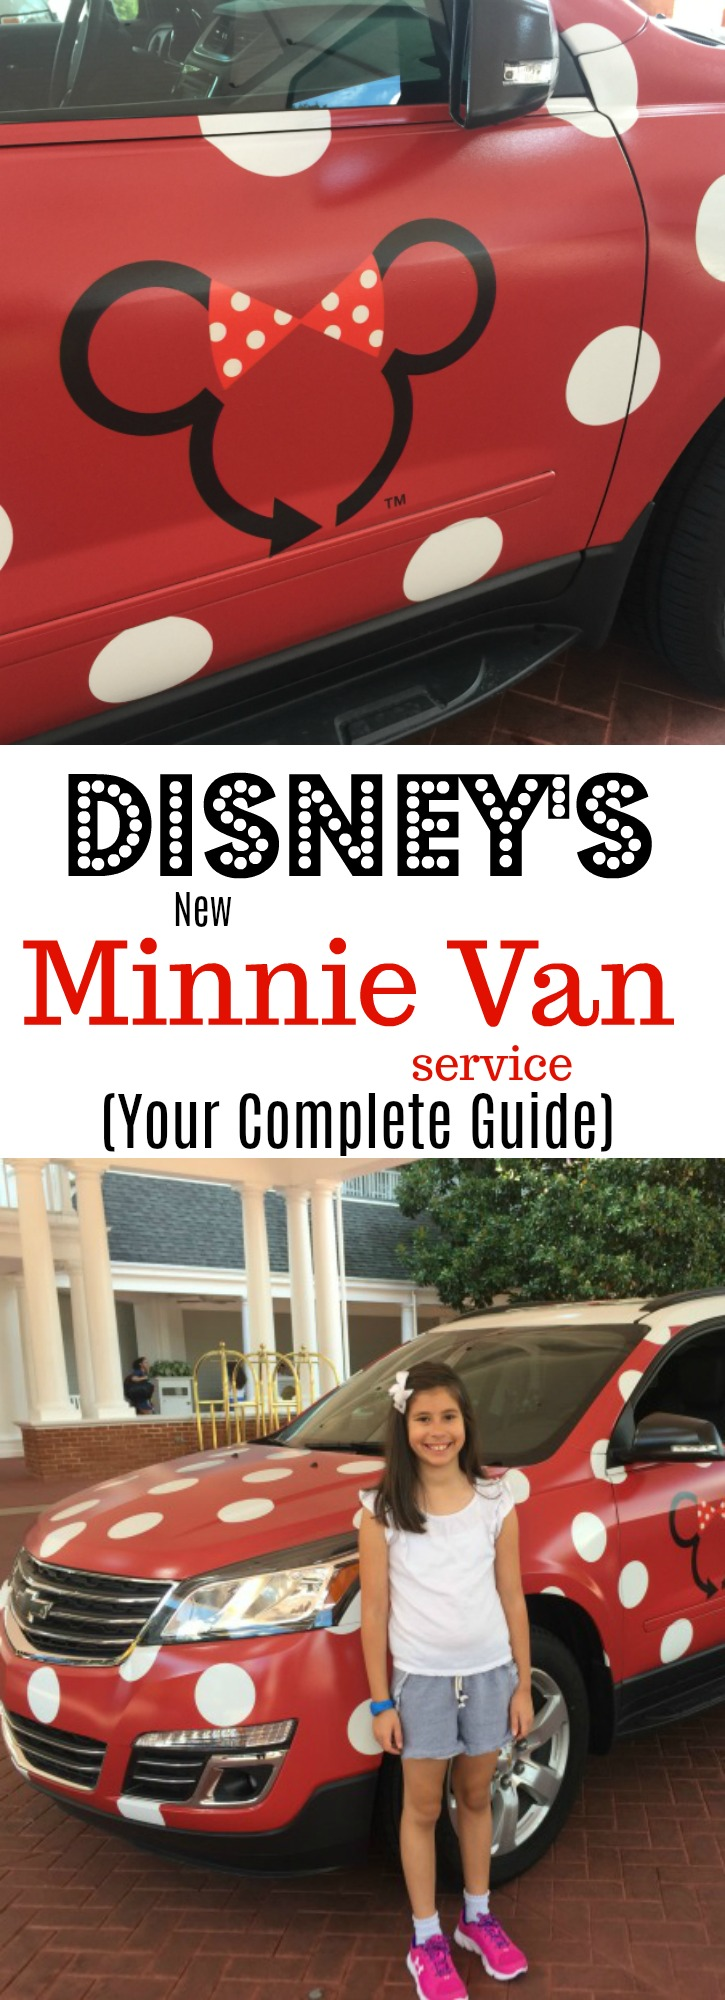 Disney's Minnie Van Service at WDW